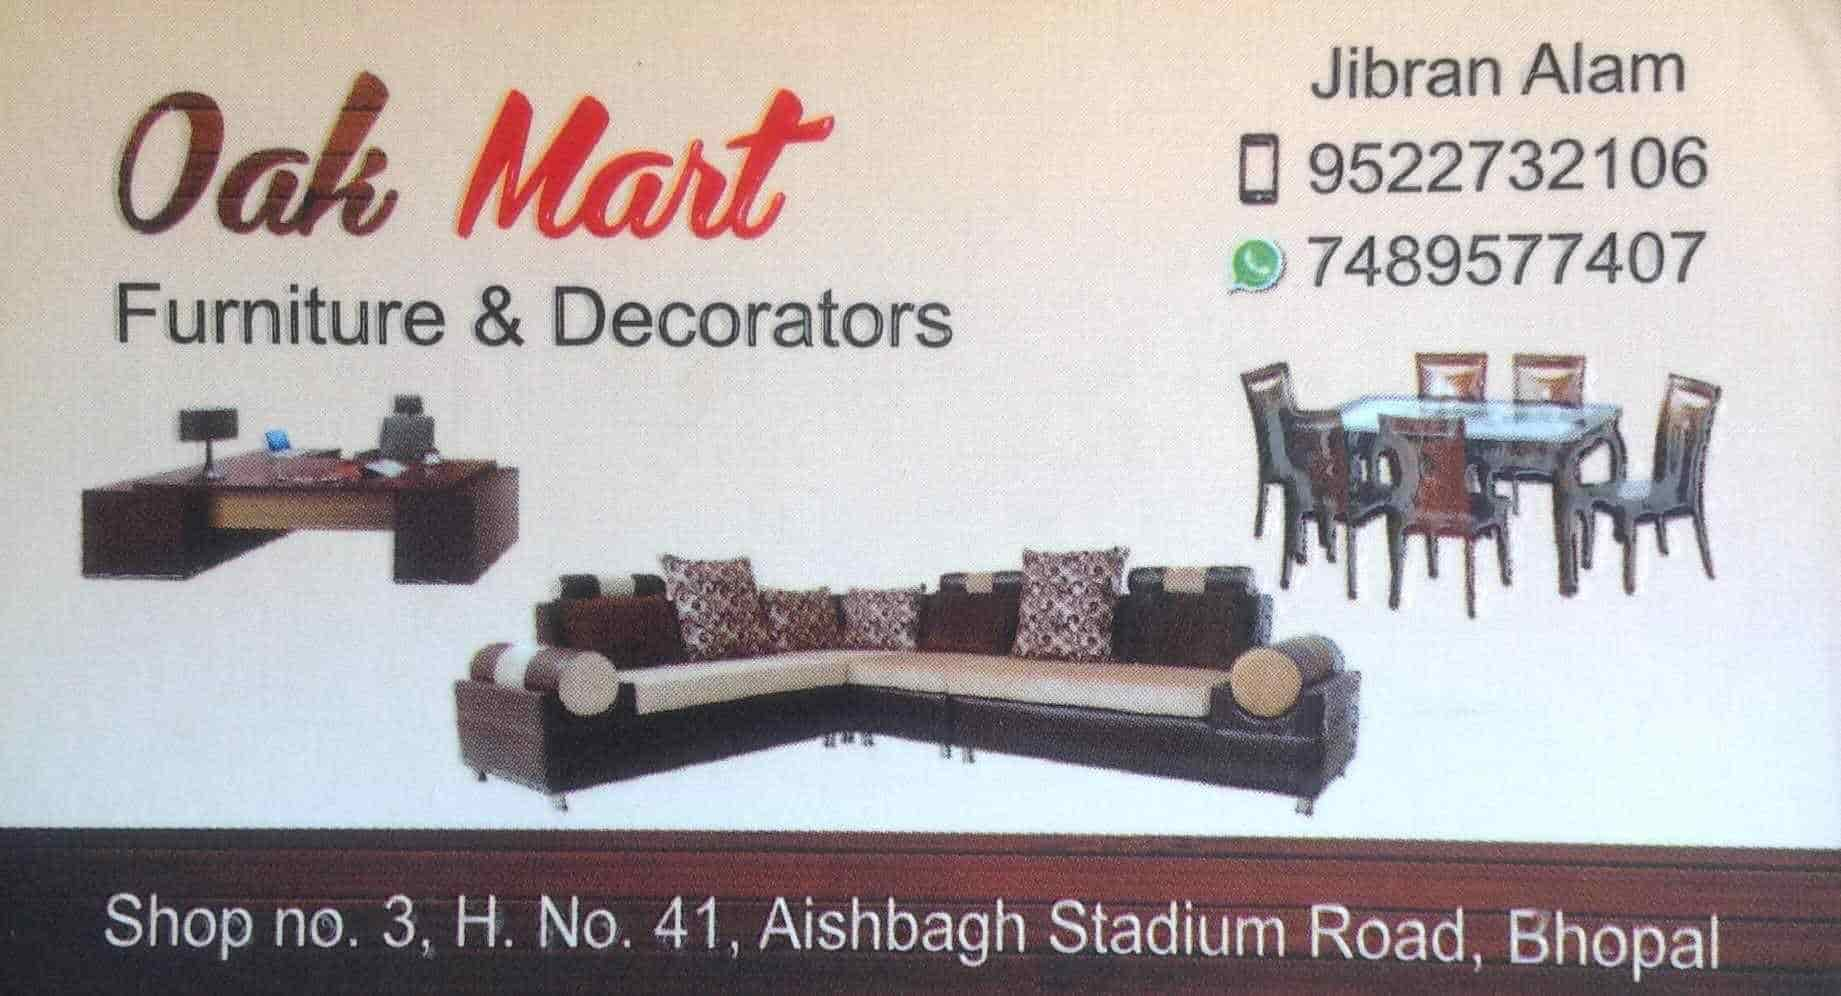 Visiting Card   Oak Mart Furniture And Decorators Photos, , Bhopal    Carpenters